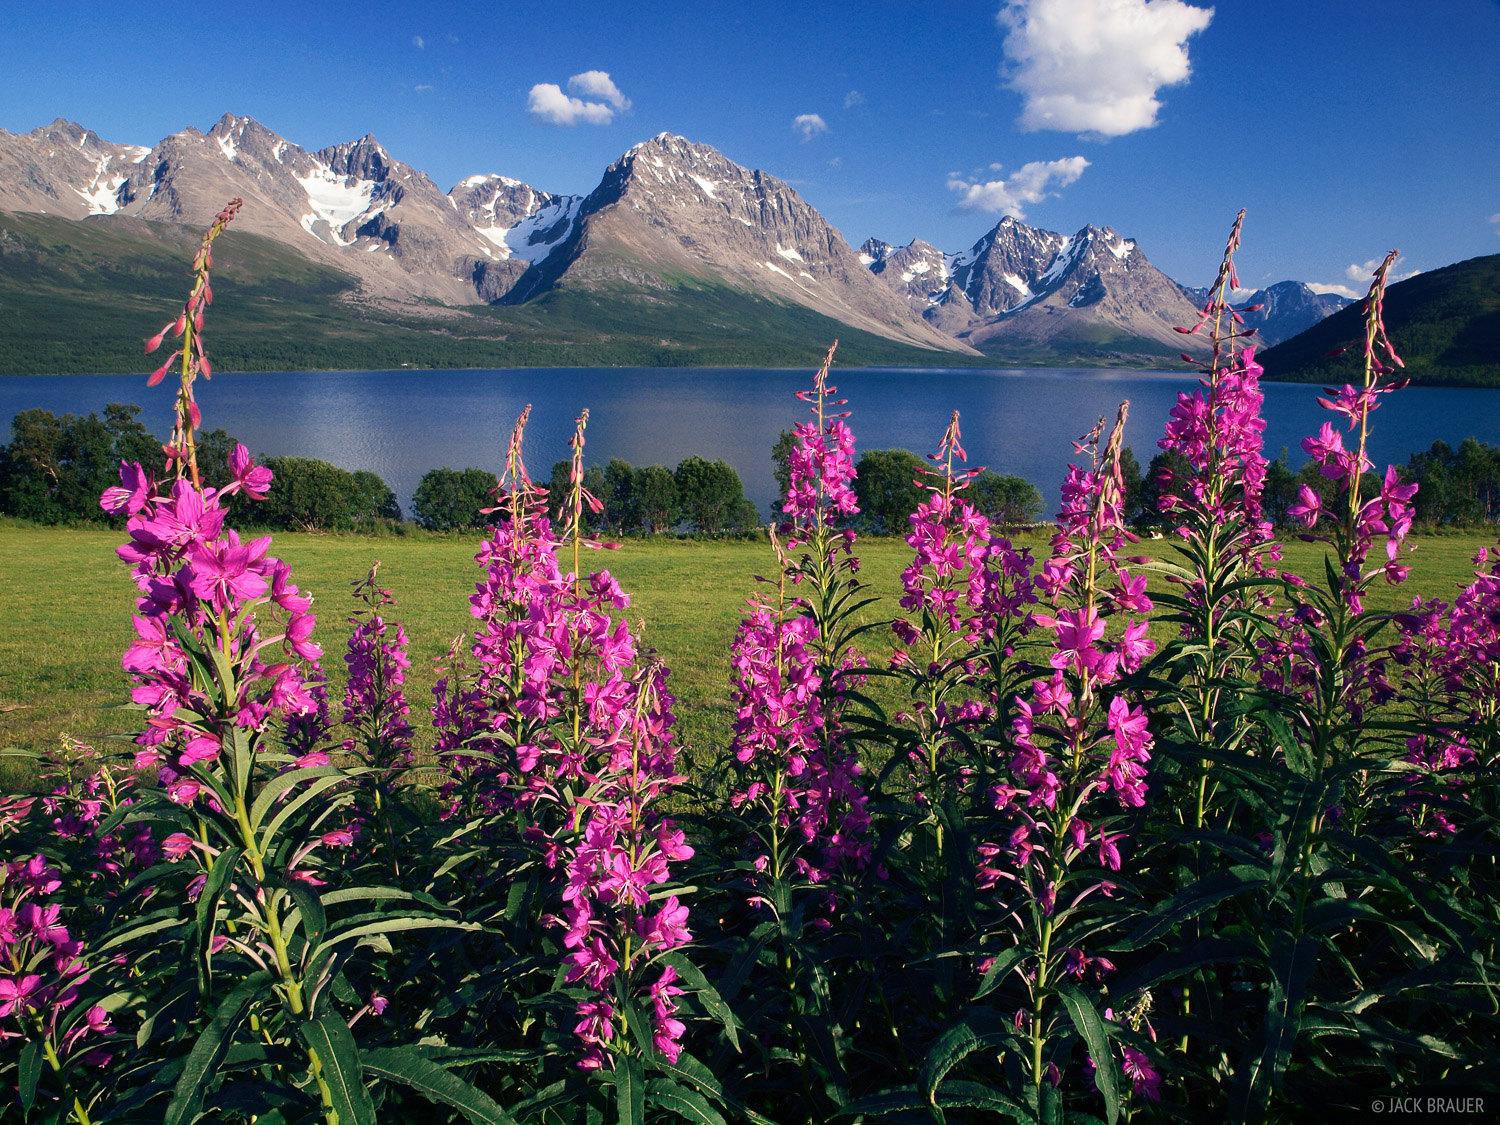 Brilliant pink fireweed and the Lyngen Alps, with Jægervatnet lake in between.